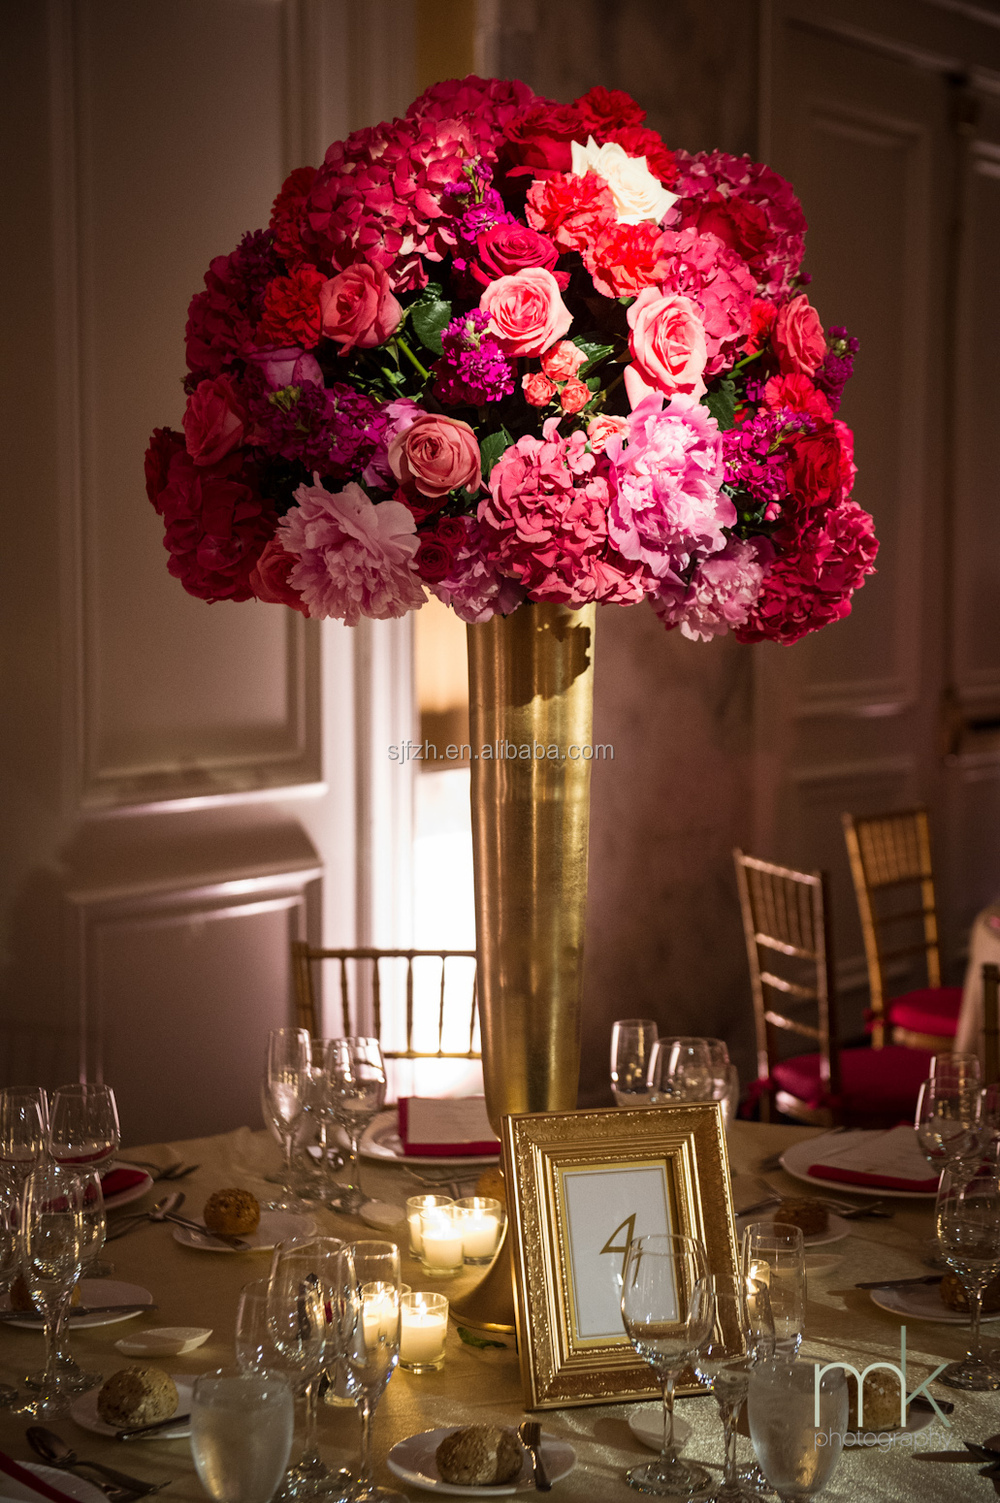 Good quality tall vase for wedding table centerpiece